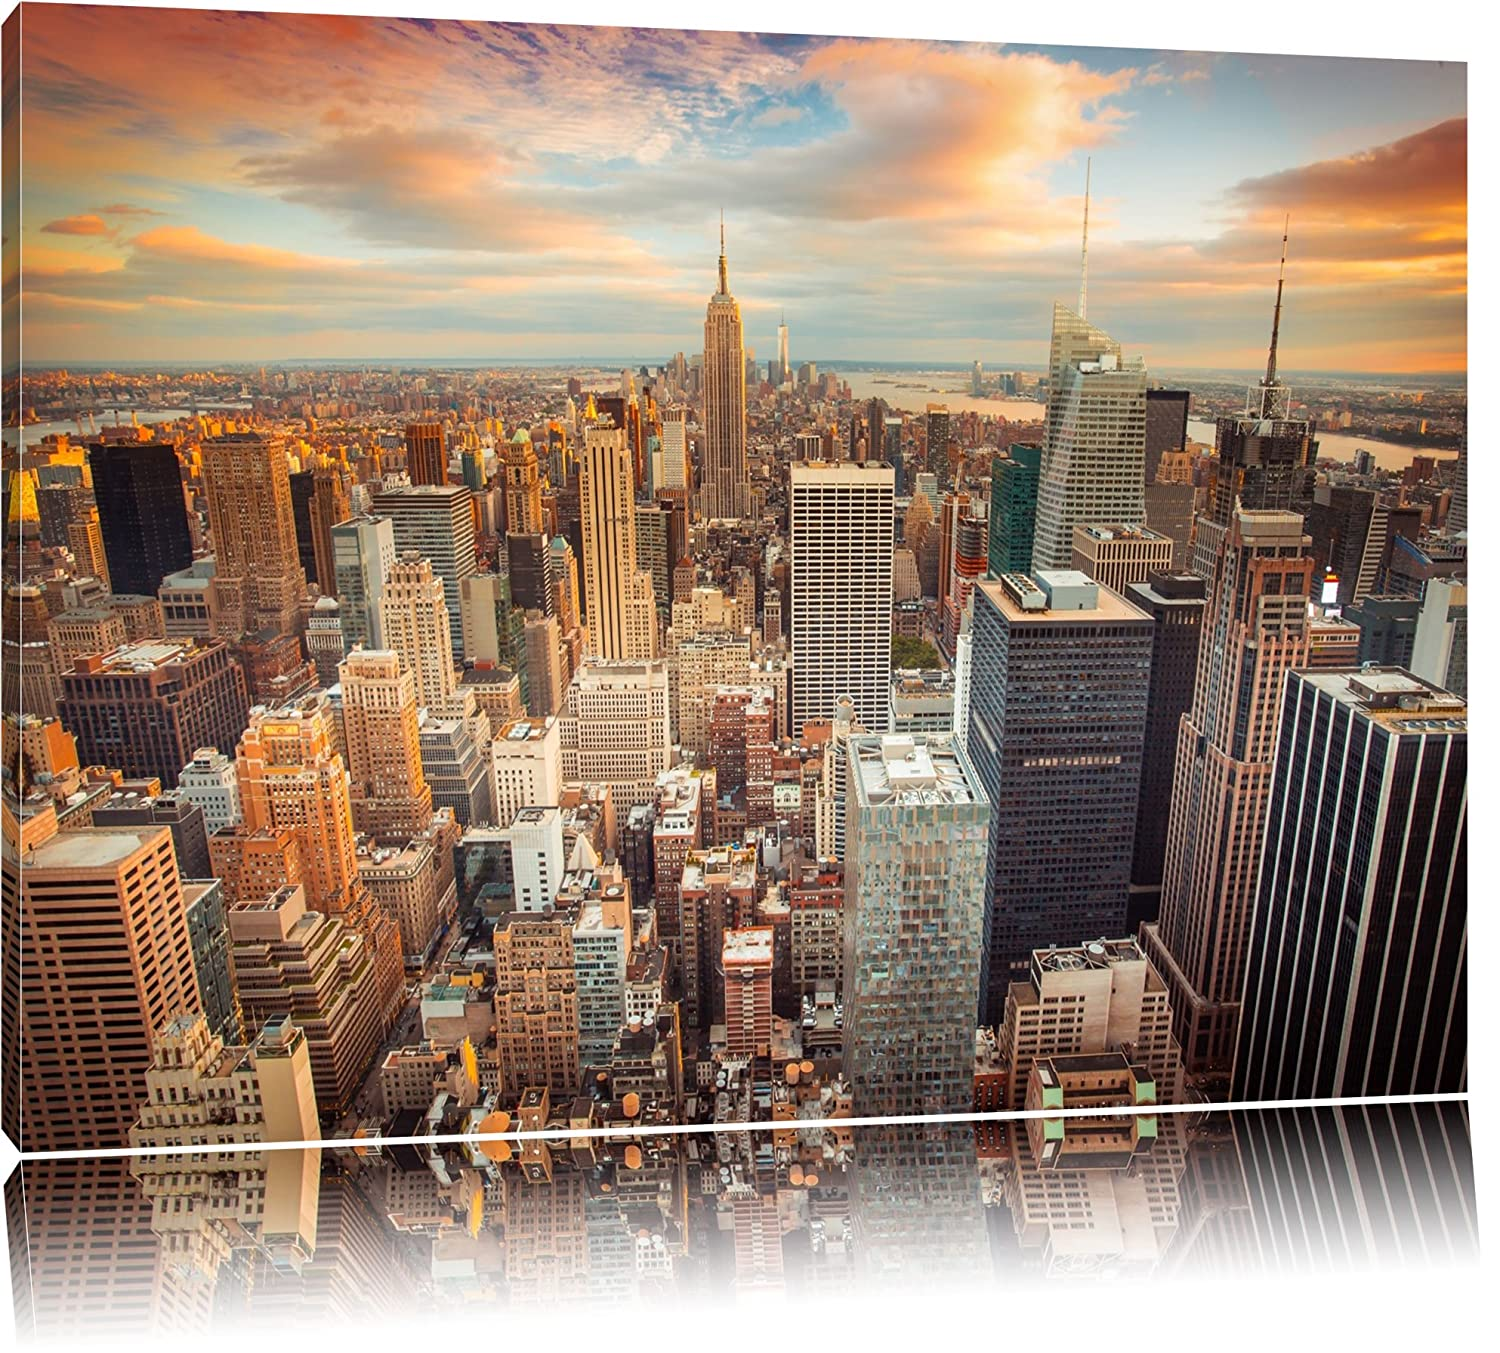 Amazon.de: Skyline von New York Format: 120x80 auf Leinwand, XXL ...